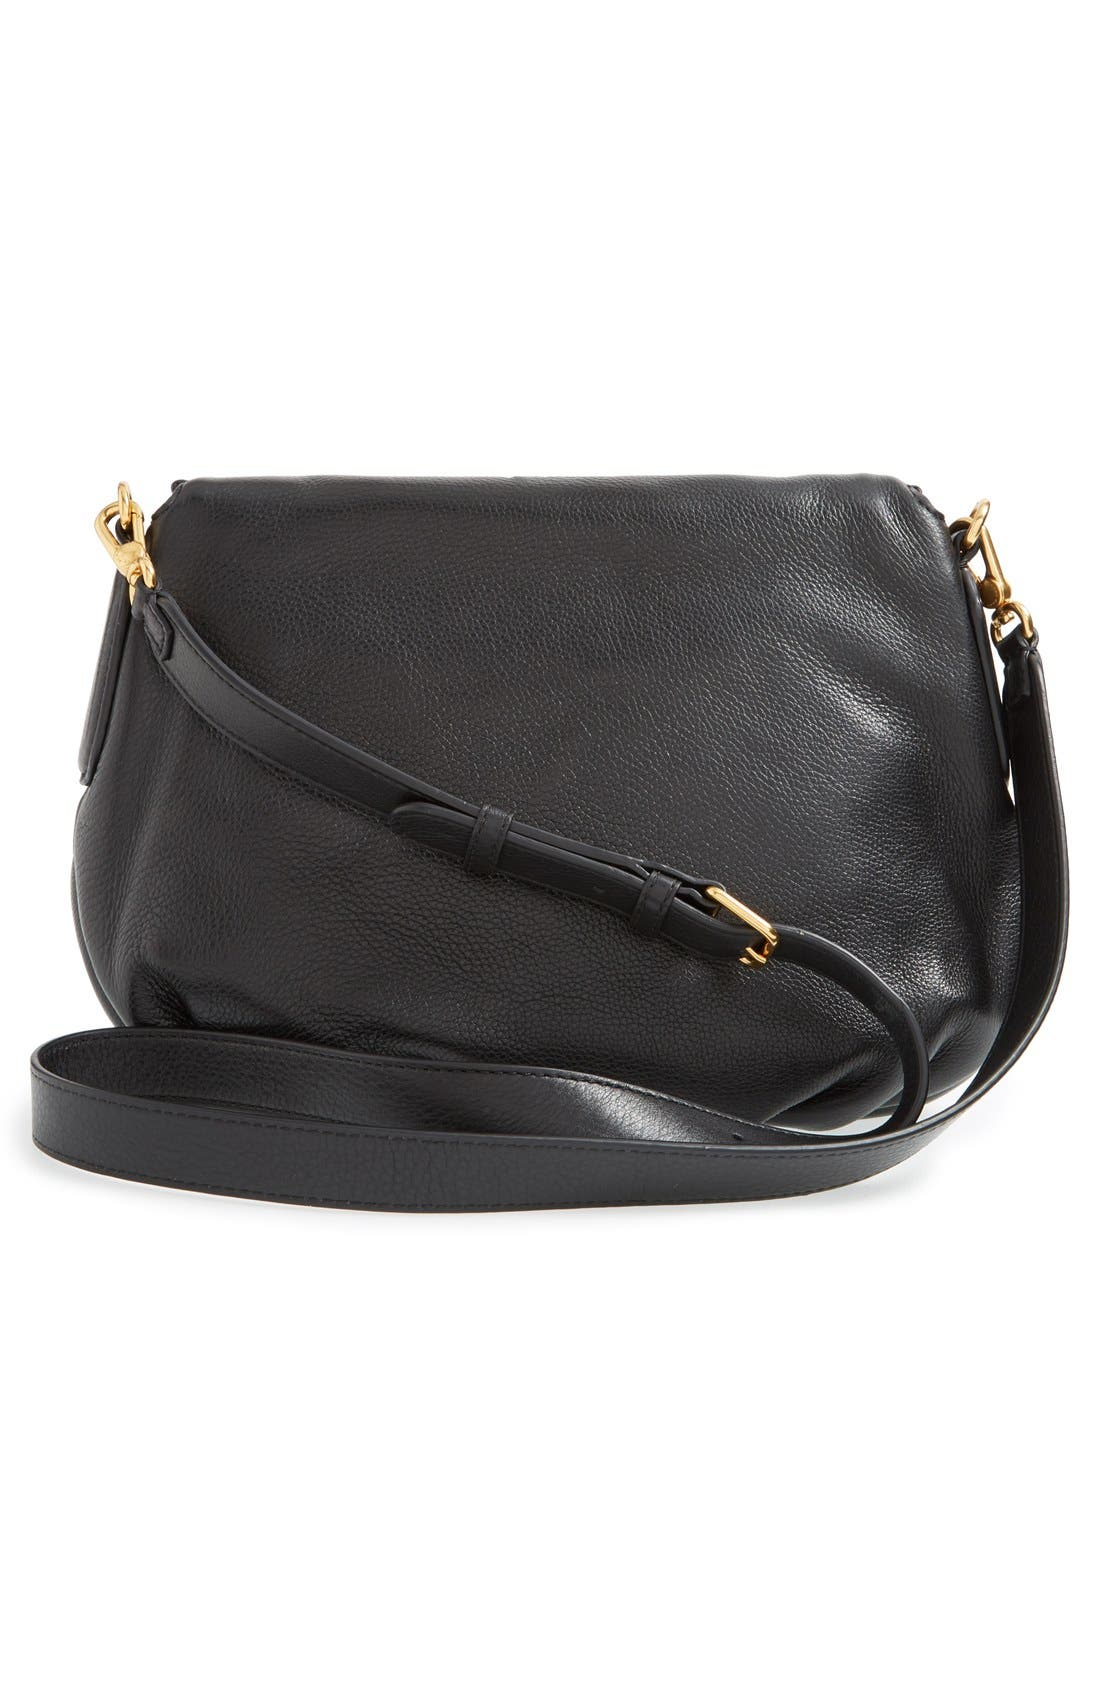 MARC BY MARC JACOBS 'New Q - Natasha' Crossbody Bag,                             Alternate thumbnail 3, color,                             Black